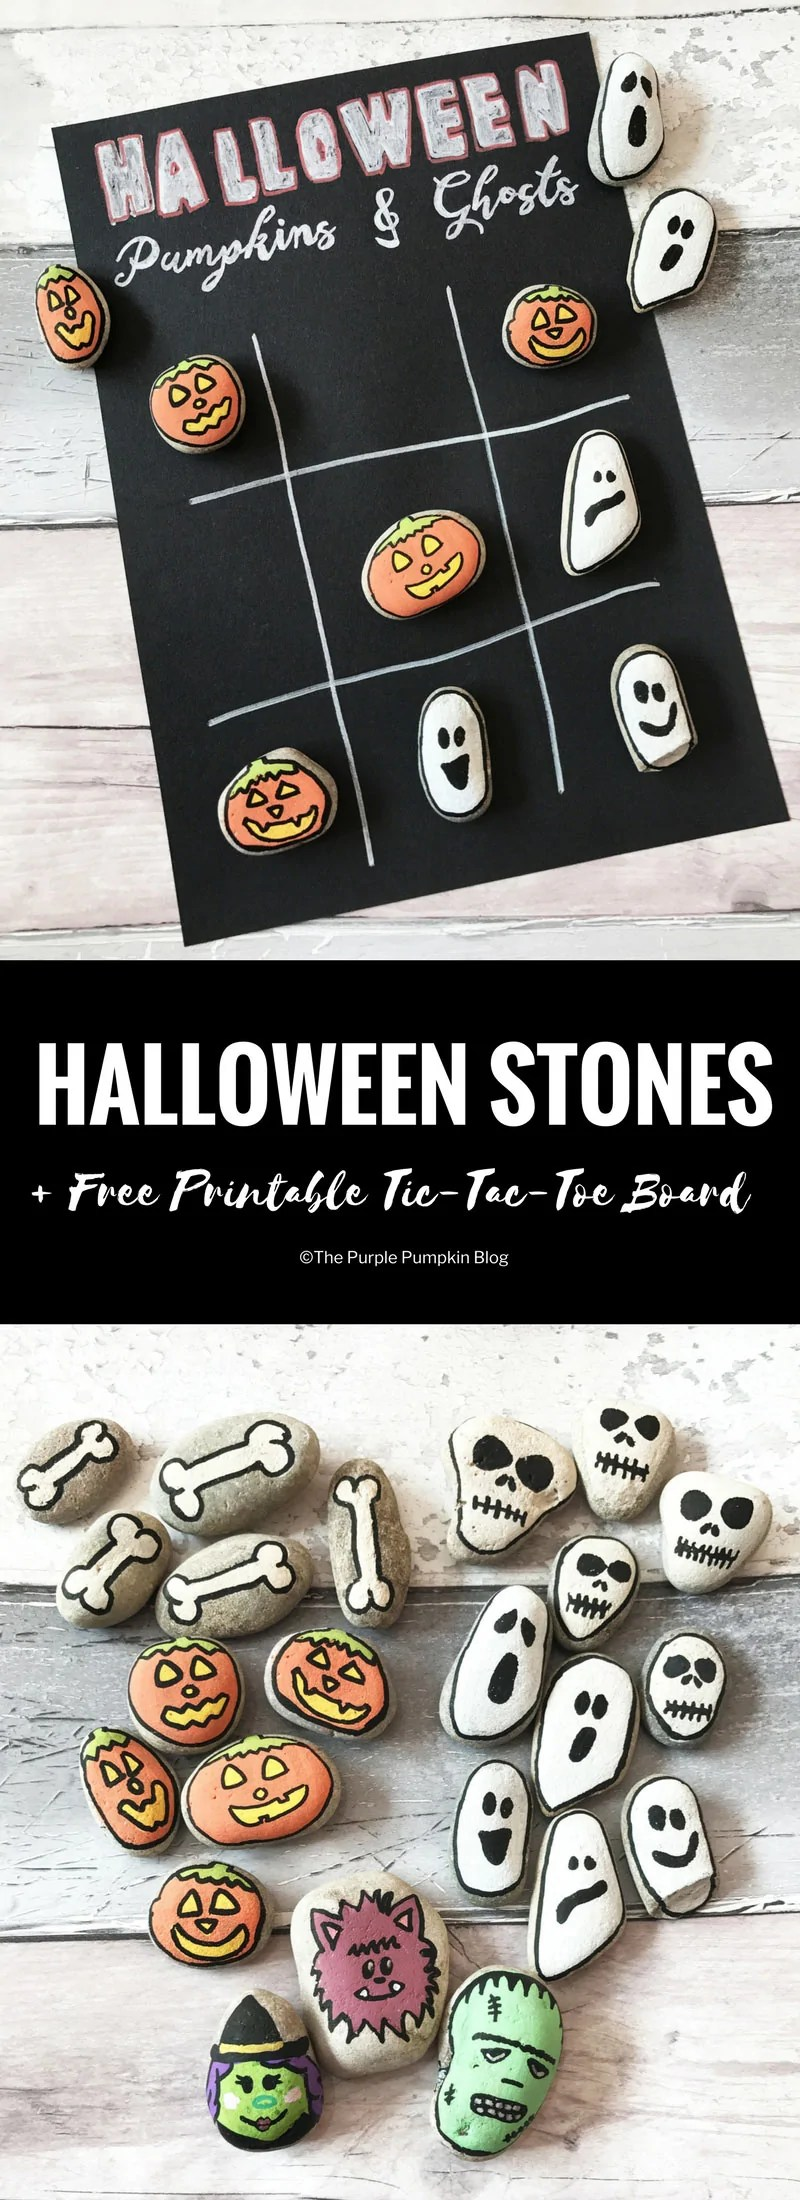 Halloween Stones: Tic-Tac-Toe. Paint stones with Halloween characters then use them to play Halloween Tic-Tac-Toe! A free printable is included in this blog post. (Plus TONS of awesome #Halloween ideas and #FreePrintables!)